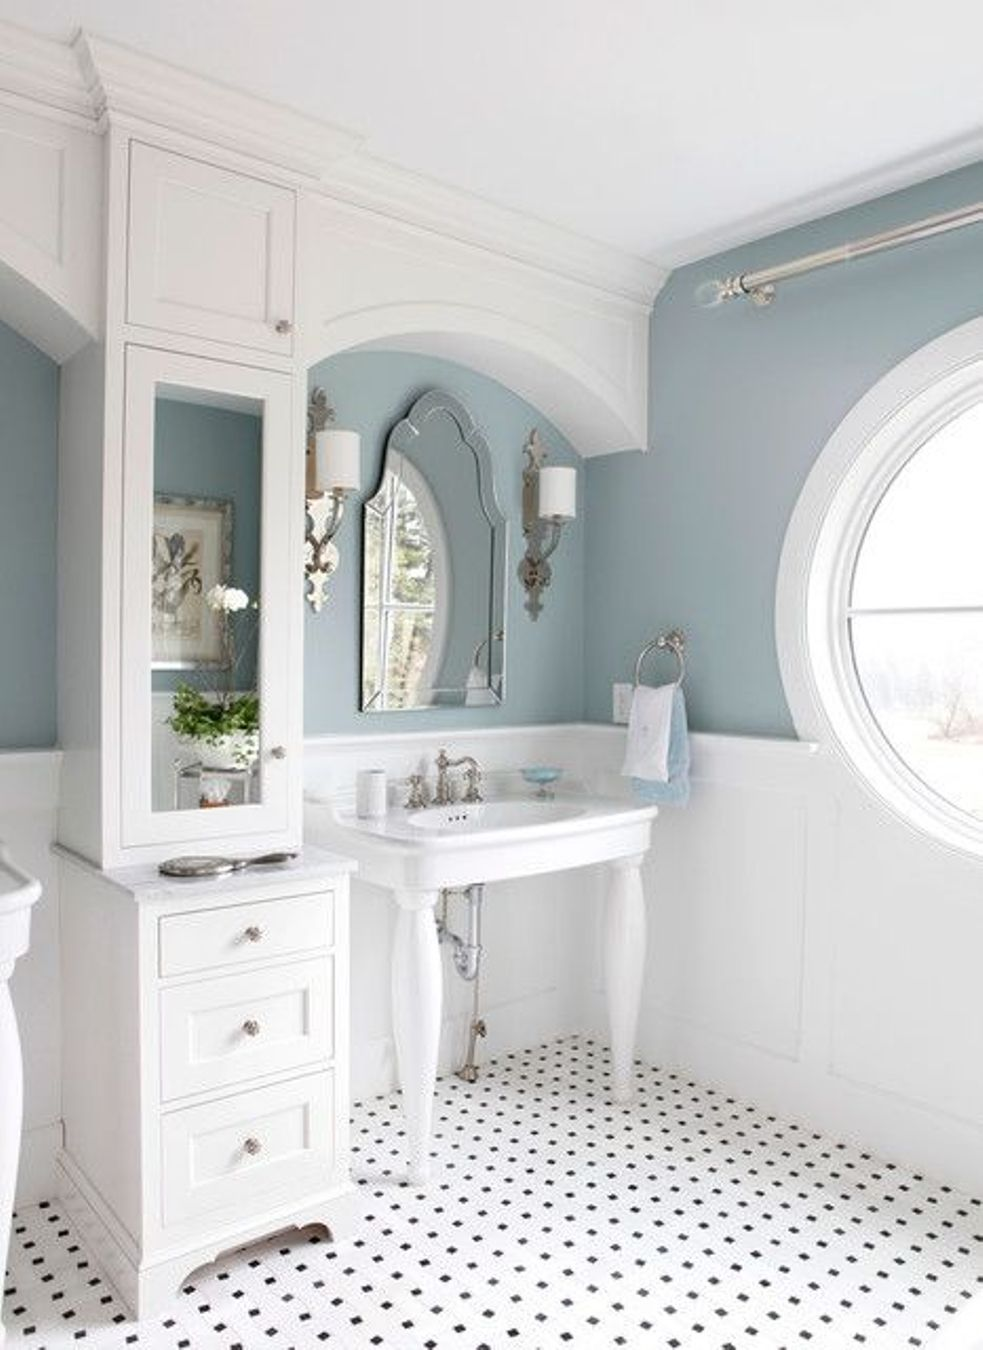 Bathroom Colors Popular Bathroom Paint Colors Popular Bathroom Throughout Popular Bath White Bathroom Interior Bathroom Interior Design Popular Bathroom Colors